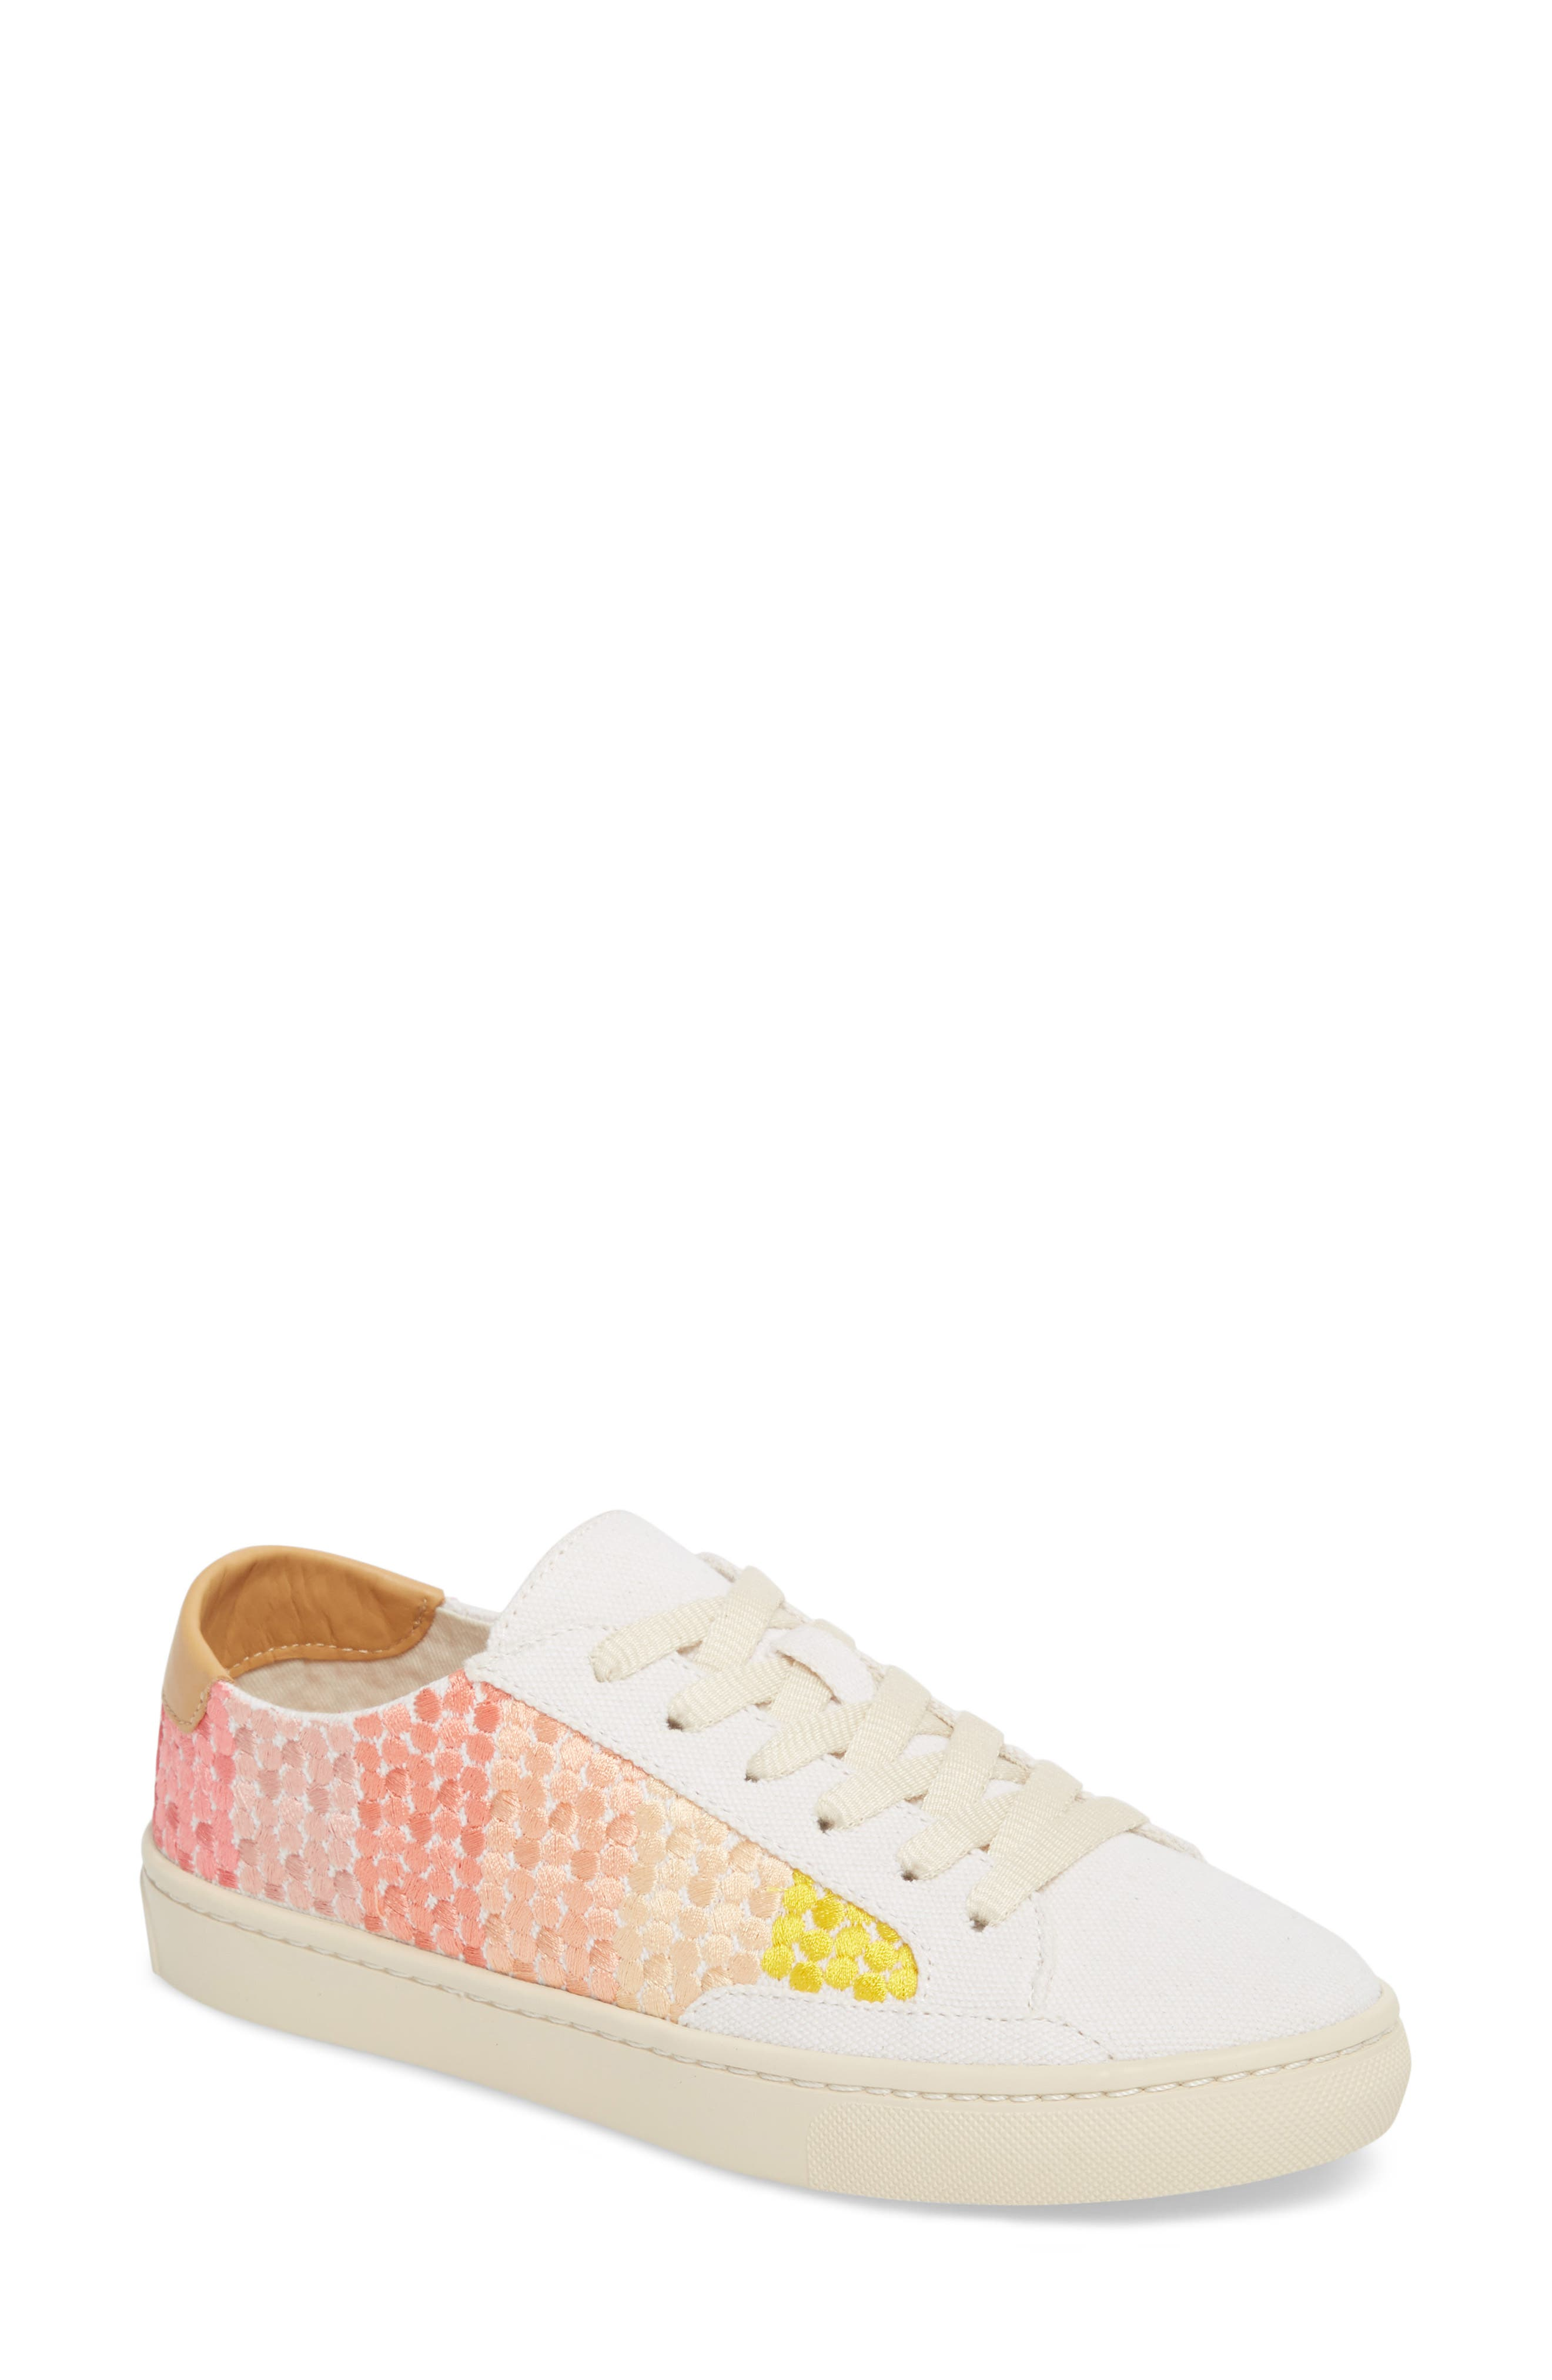 Embroidered Ombre Sneaker,                         Main,                         color, 731